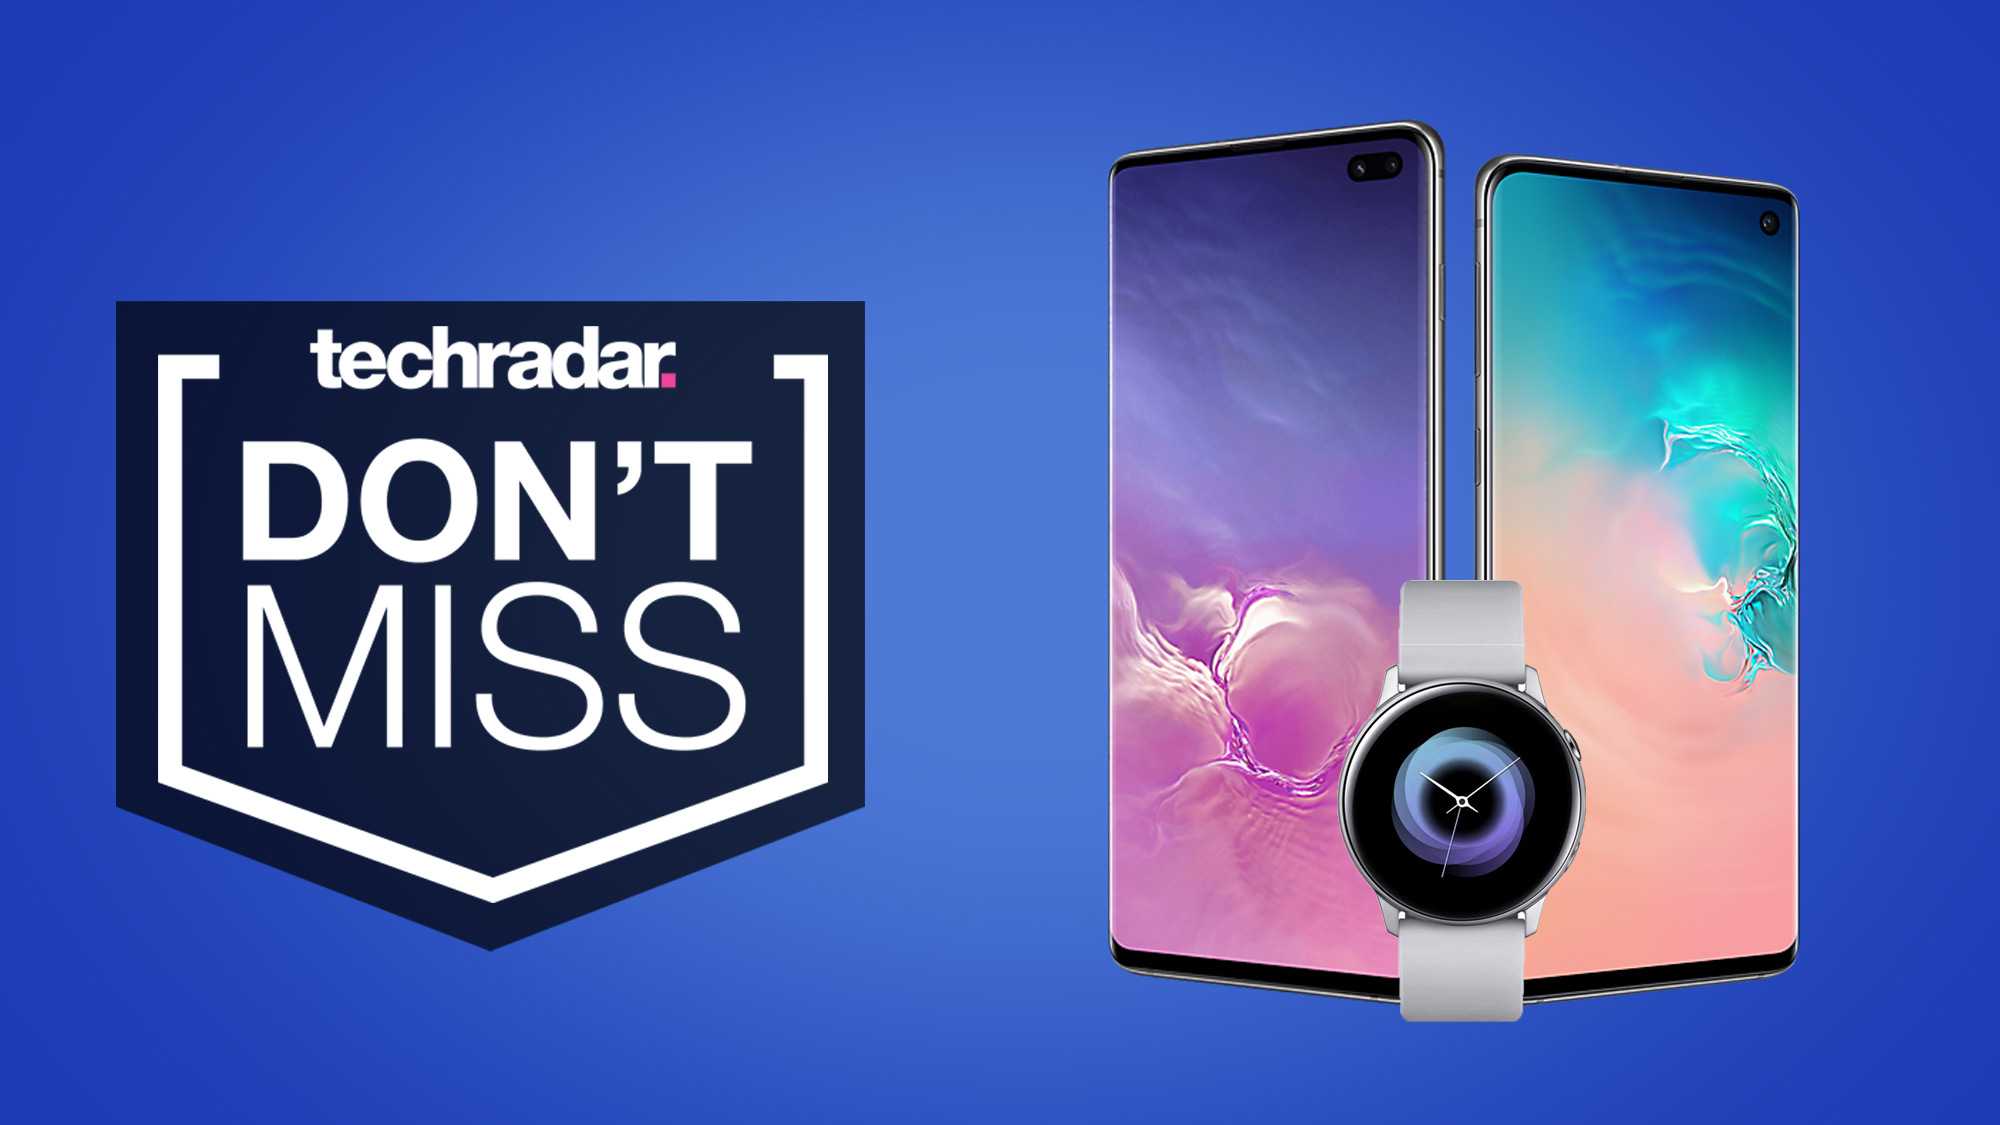 You can get a free smartwatch with these Samsung Galaxy S10 deals...but not for long